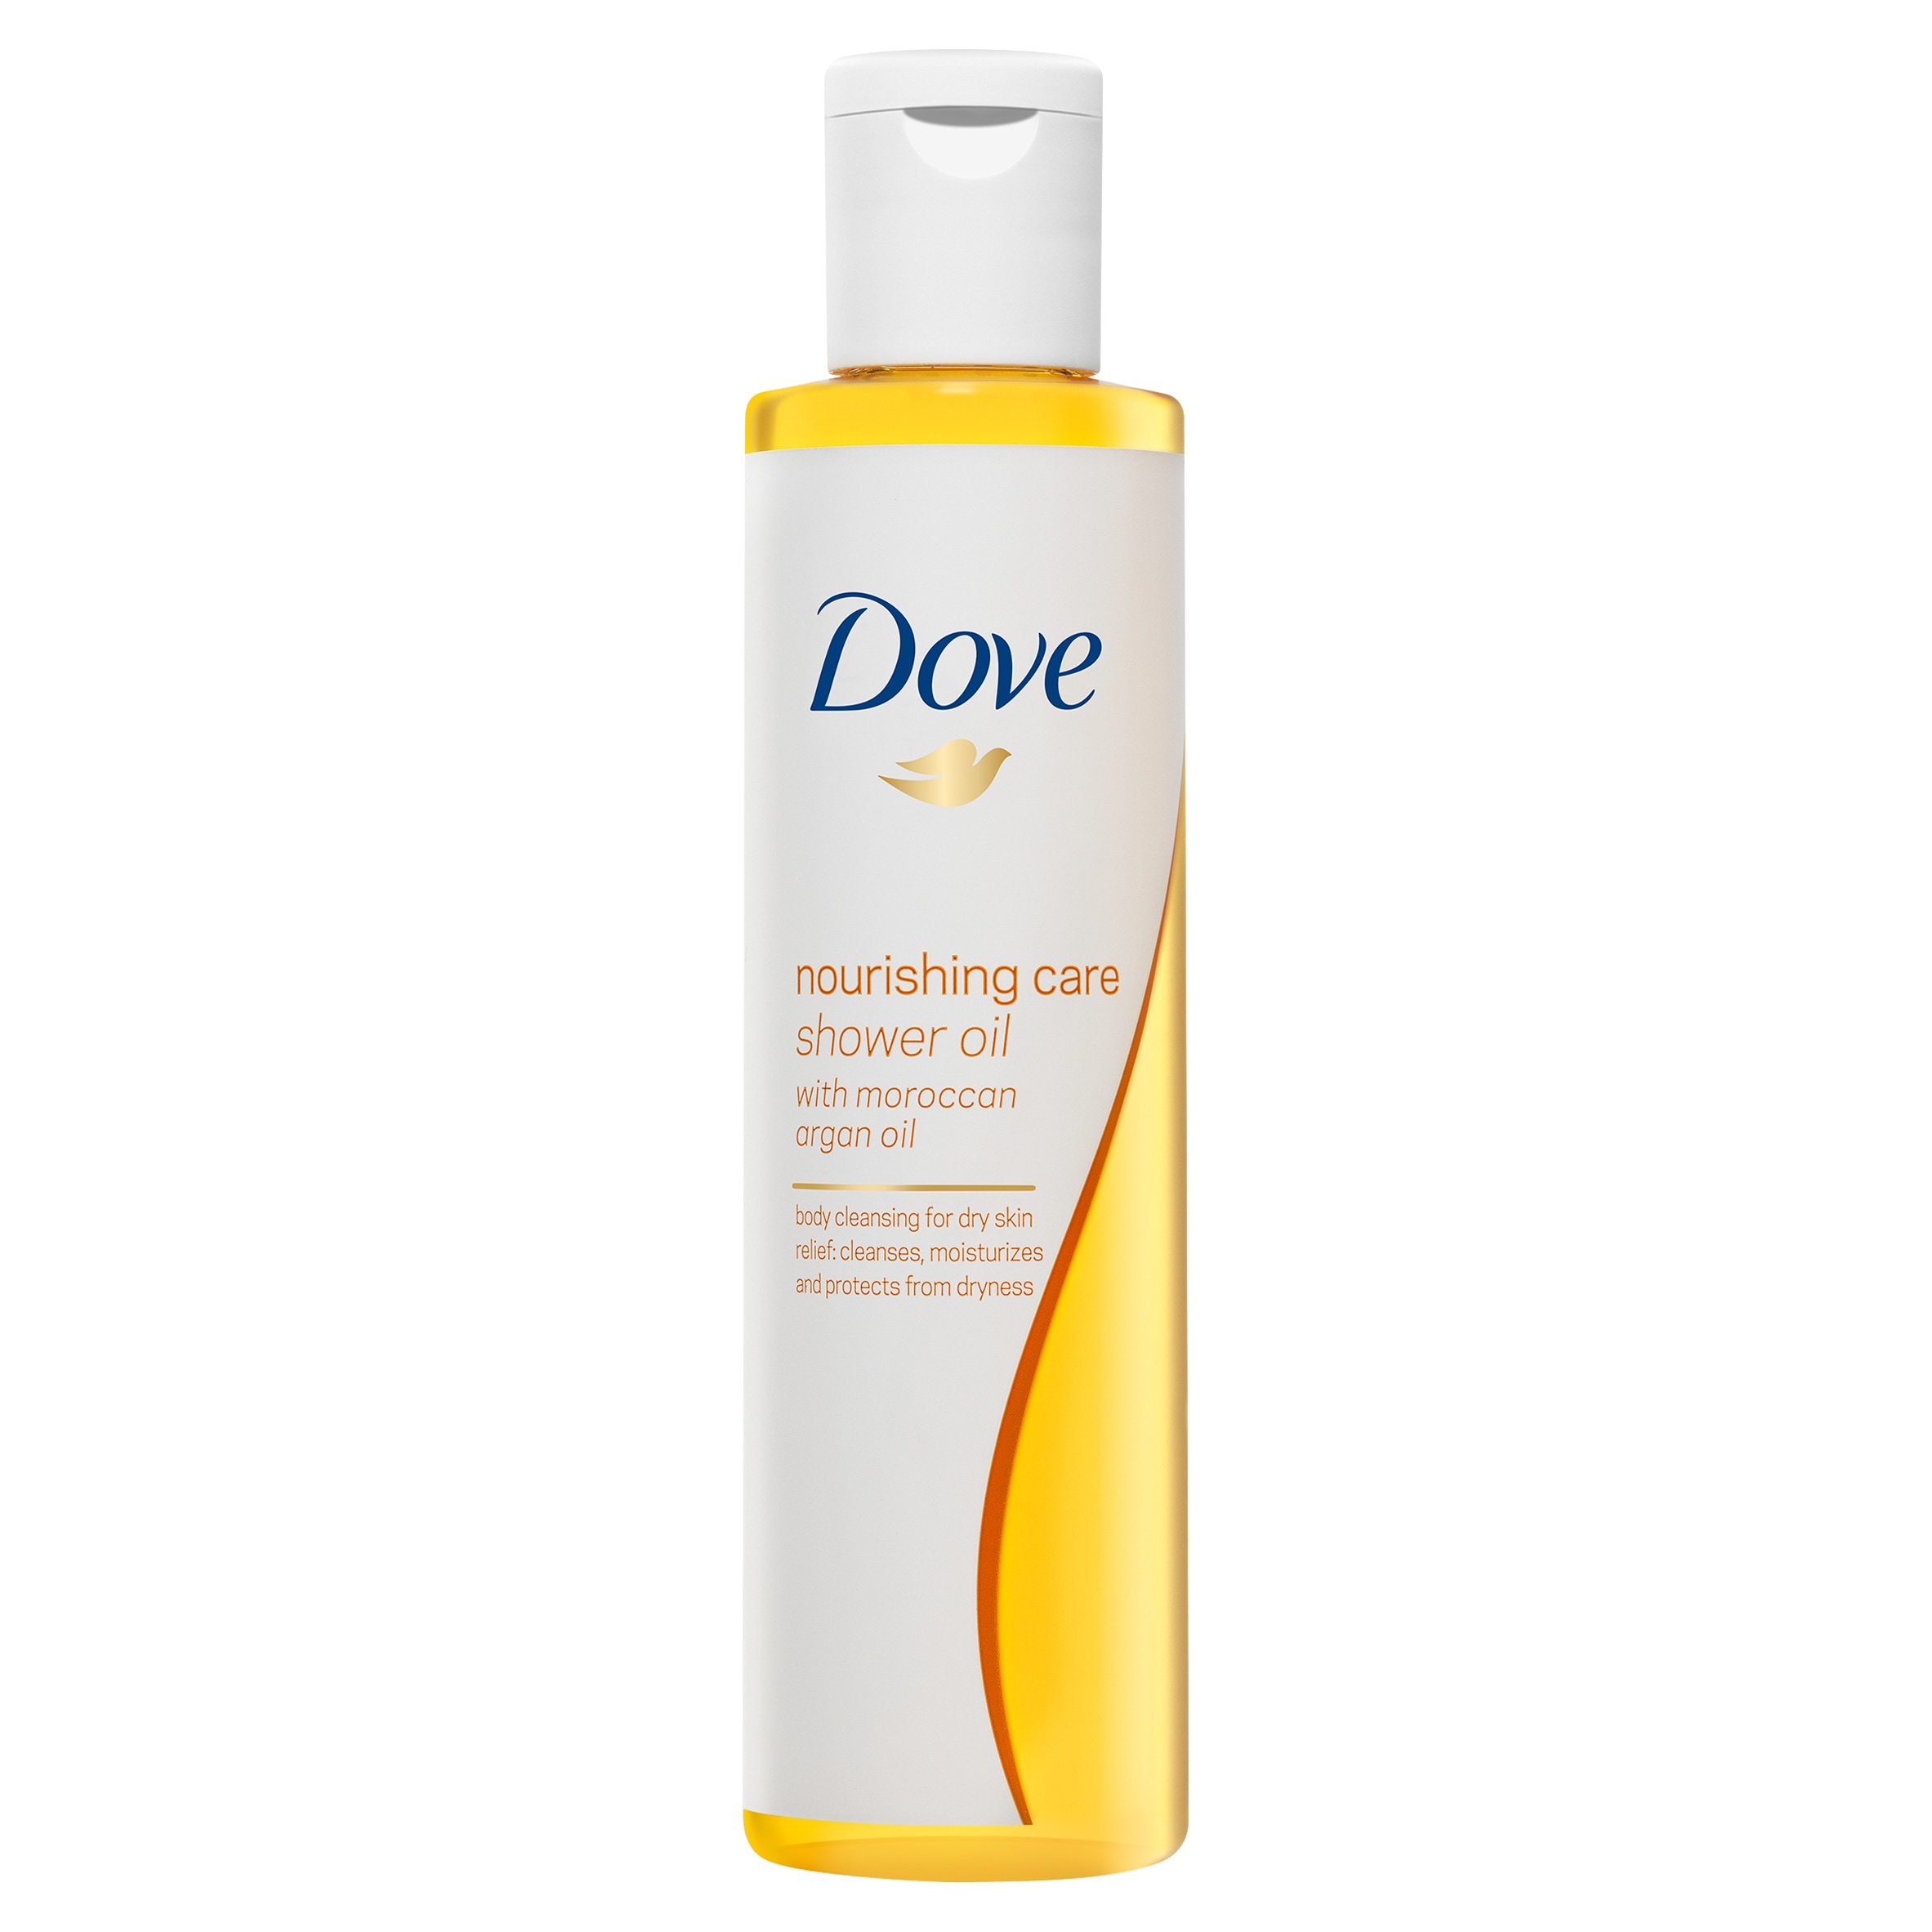 Dove Nourishing Care Shower Oil